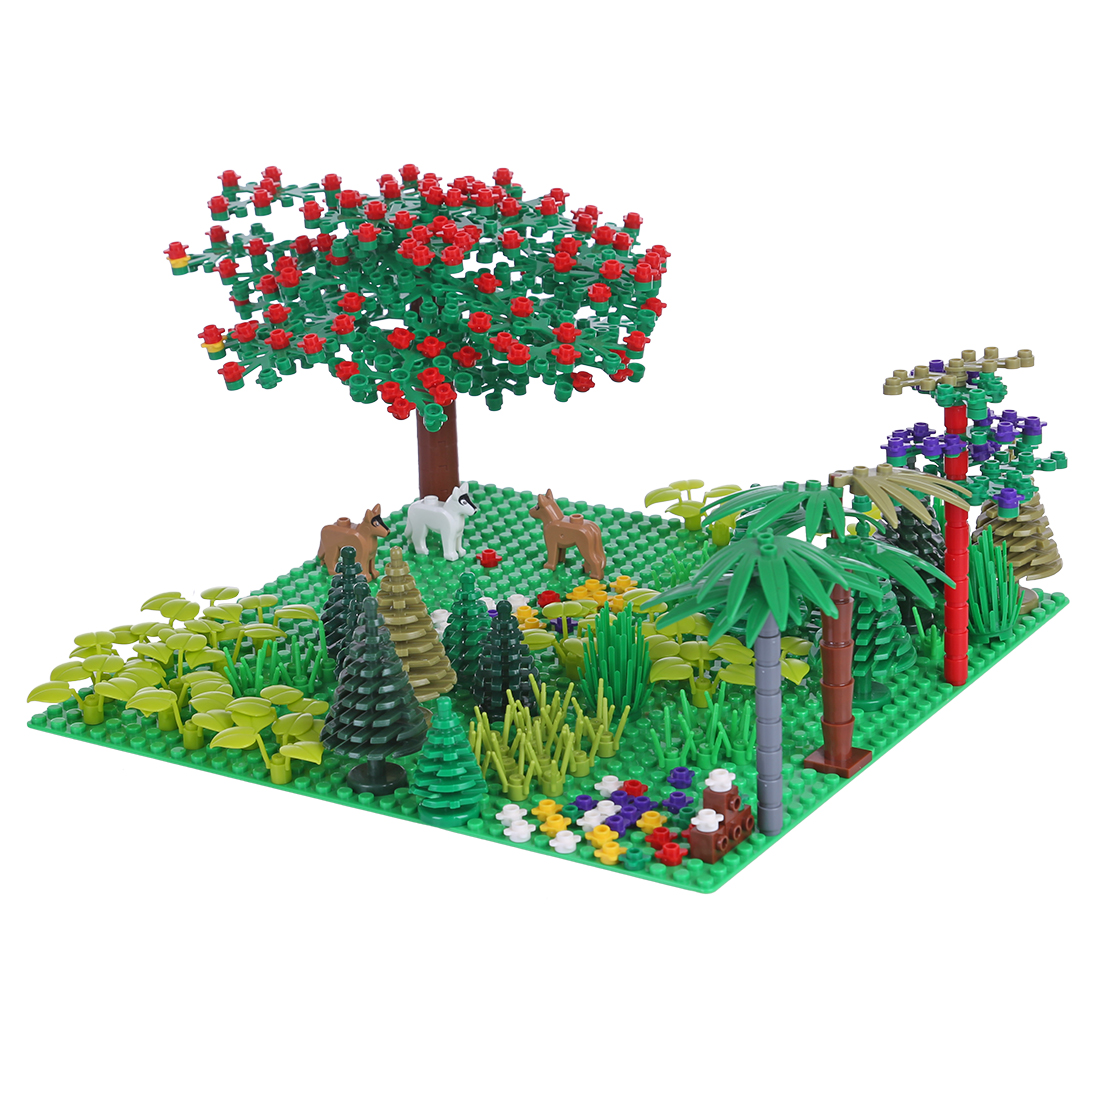 401Pcs DIY Small Particle Building Block Tropical Jungle Scenery Toy Set with <font><b>32x32</b></font> <font><b>Baseplate</b></font> for 100% Building Block Brands image